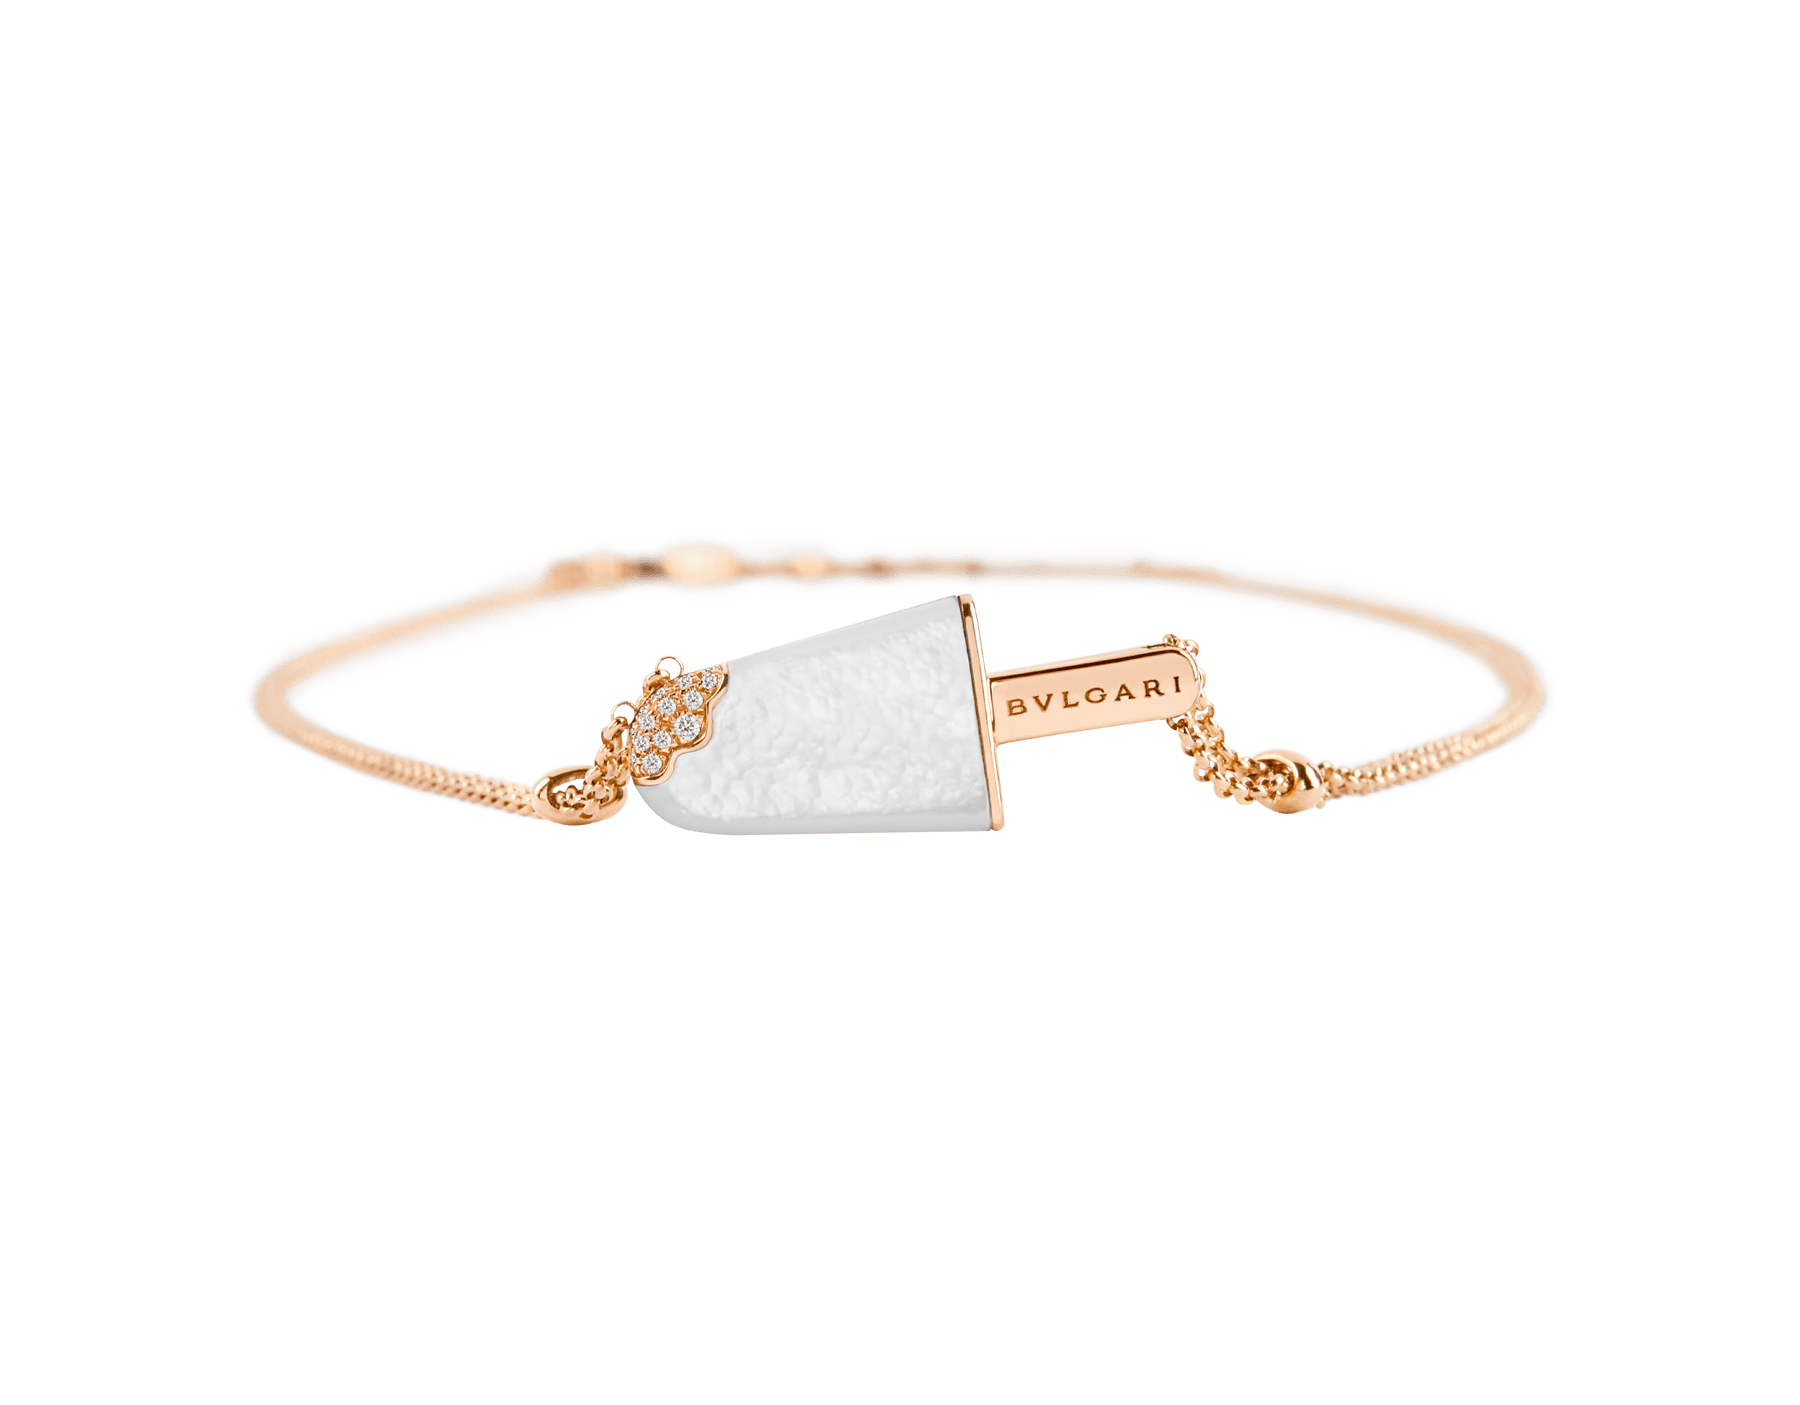 BVLGARI BVLGARI Gelati 18 kt rose gold necklace set with mother-of-pearl and pavé diamonds 356132 image 2